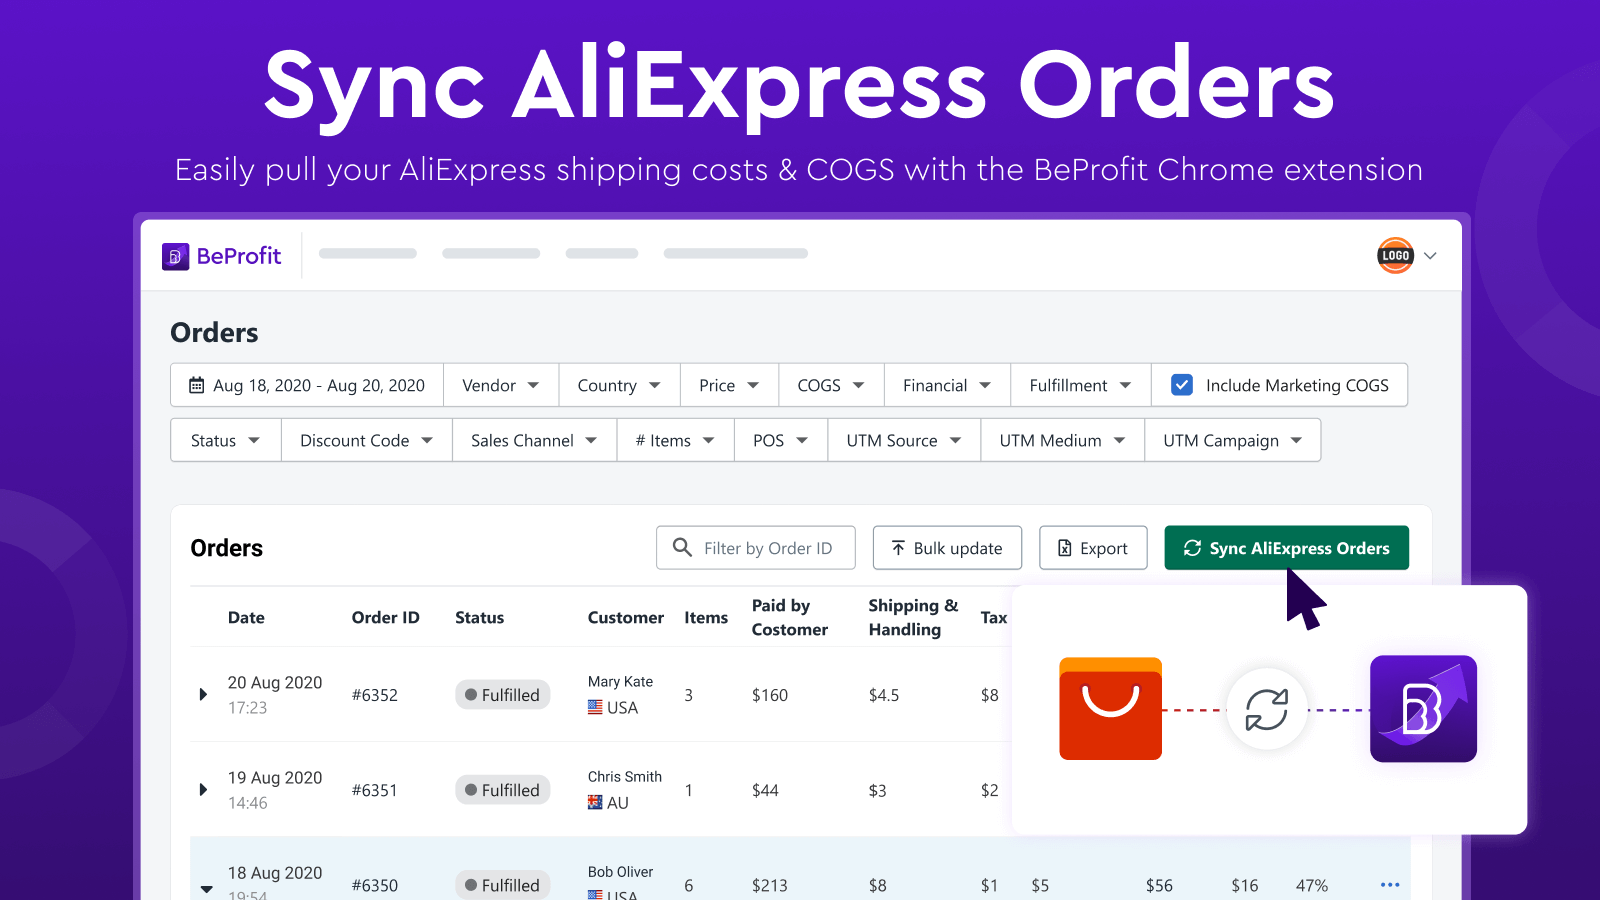 Sync your AliExpress orders with the BeProfit Chrome extension